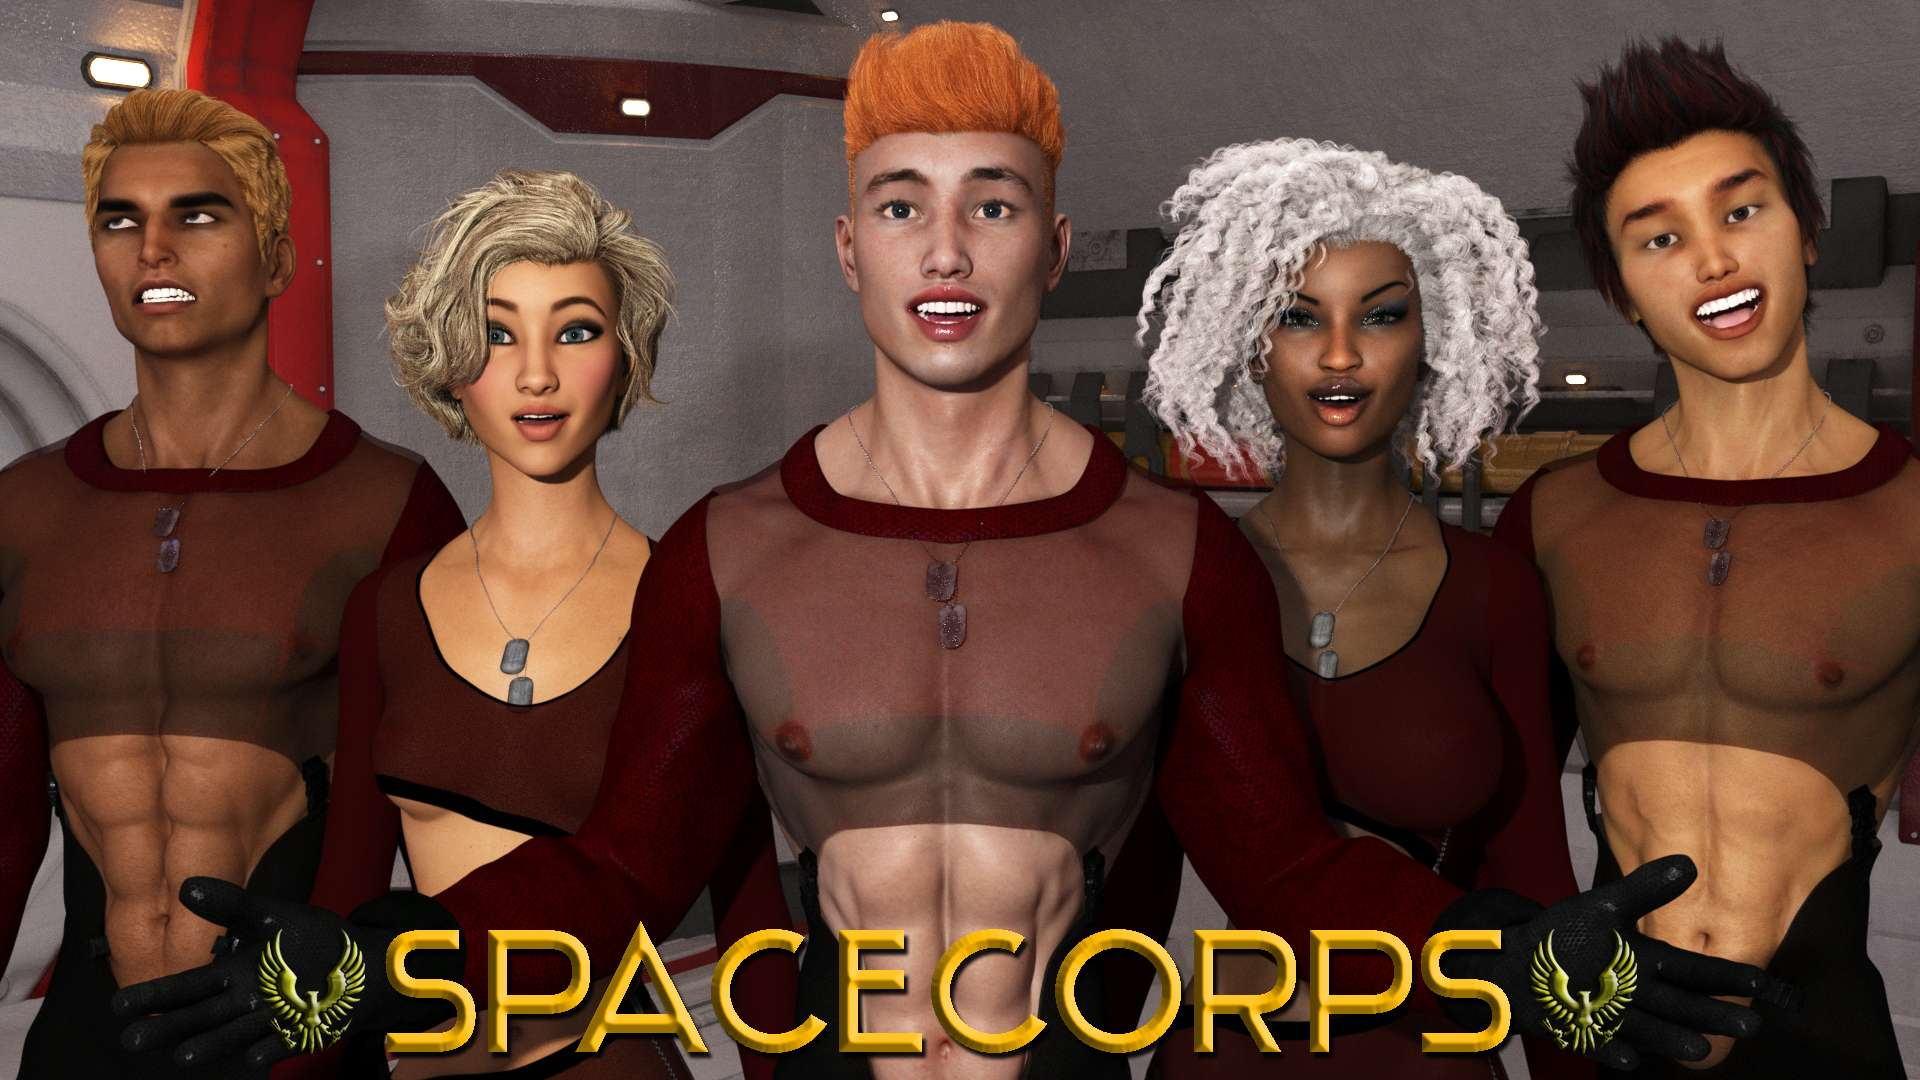 RanliLabz is creating SpaceCorps XXX